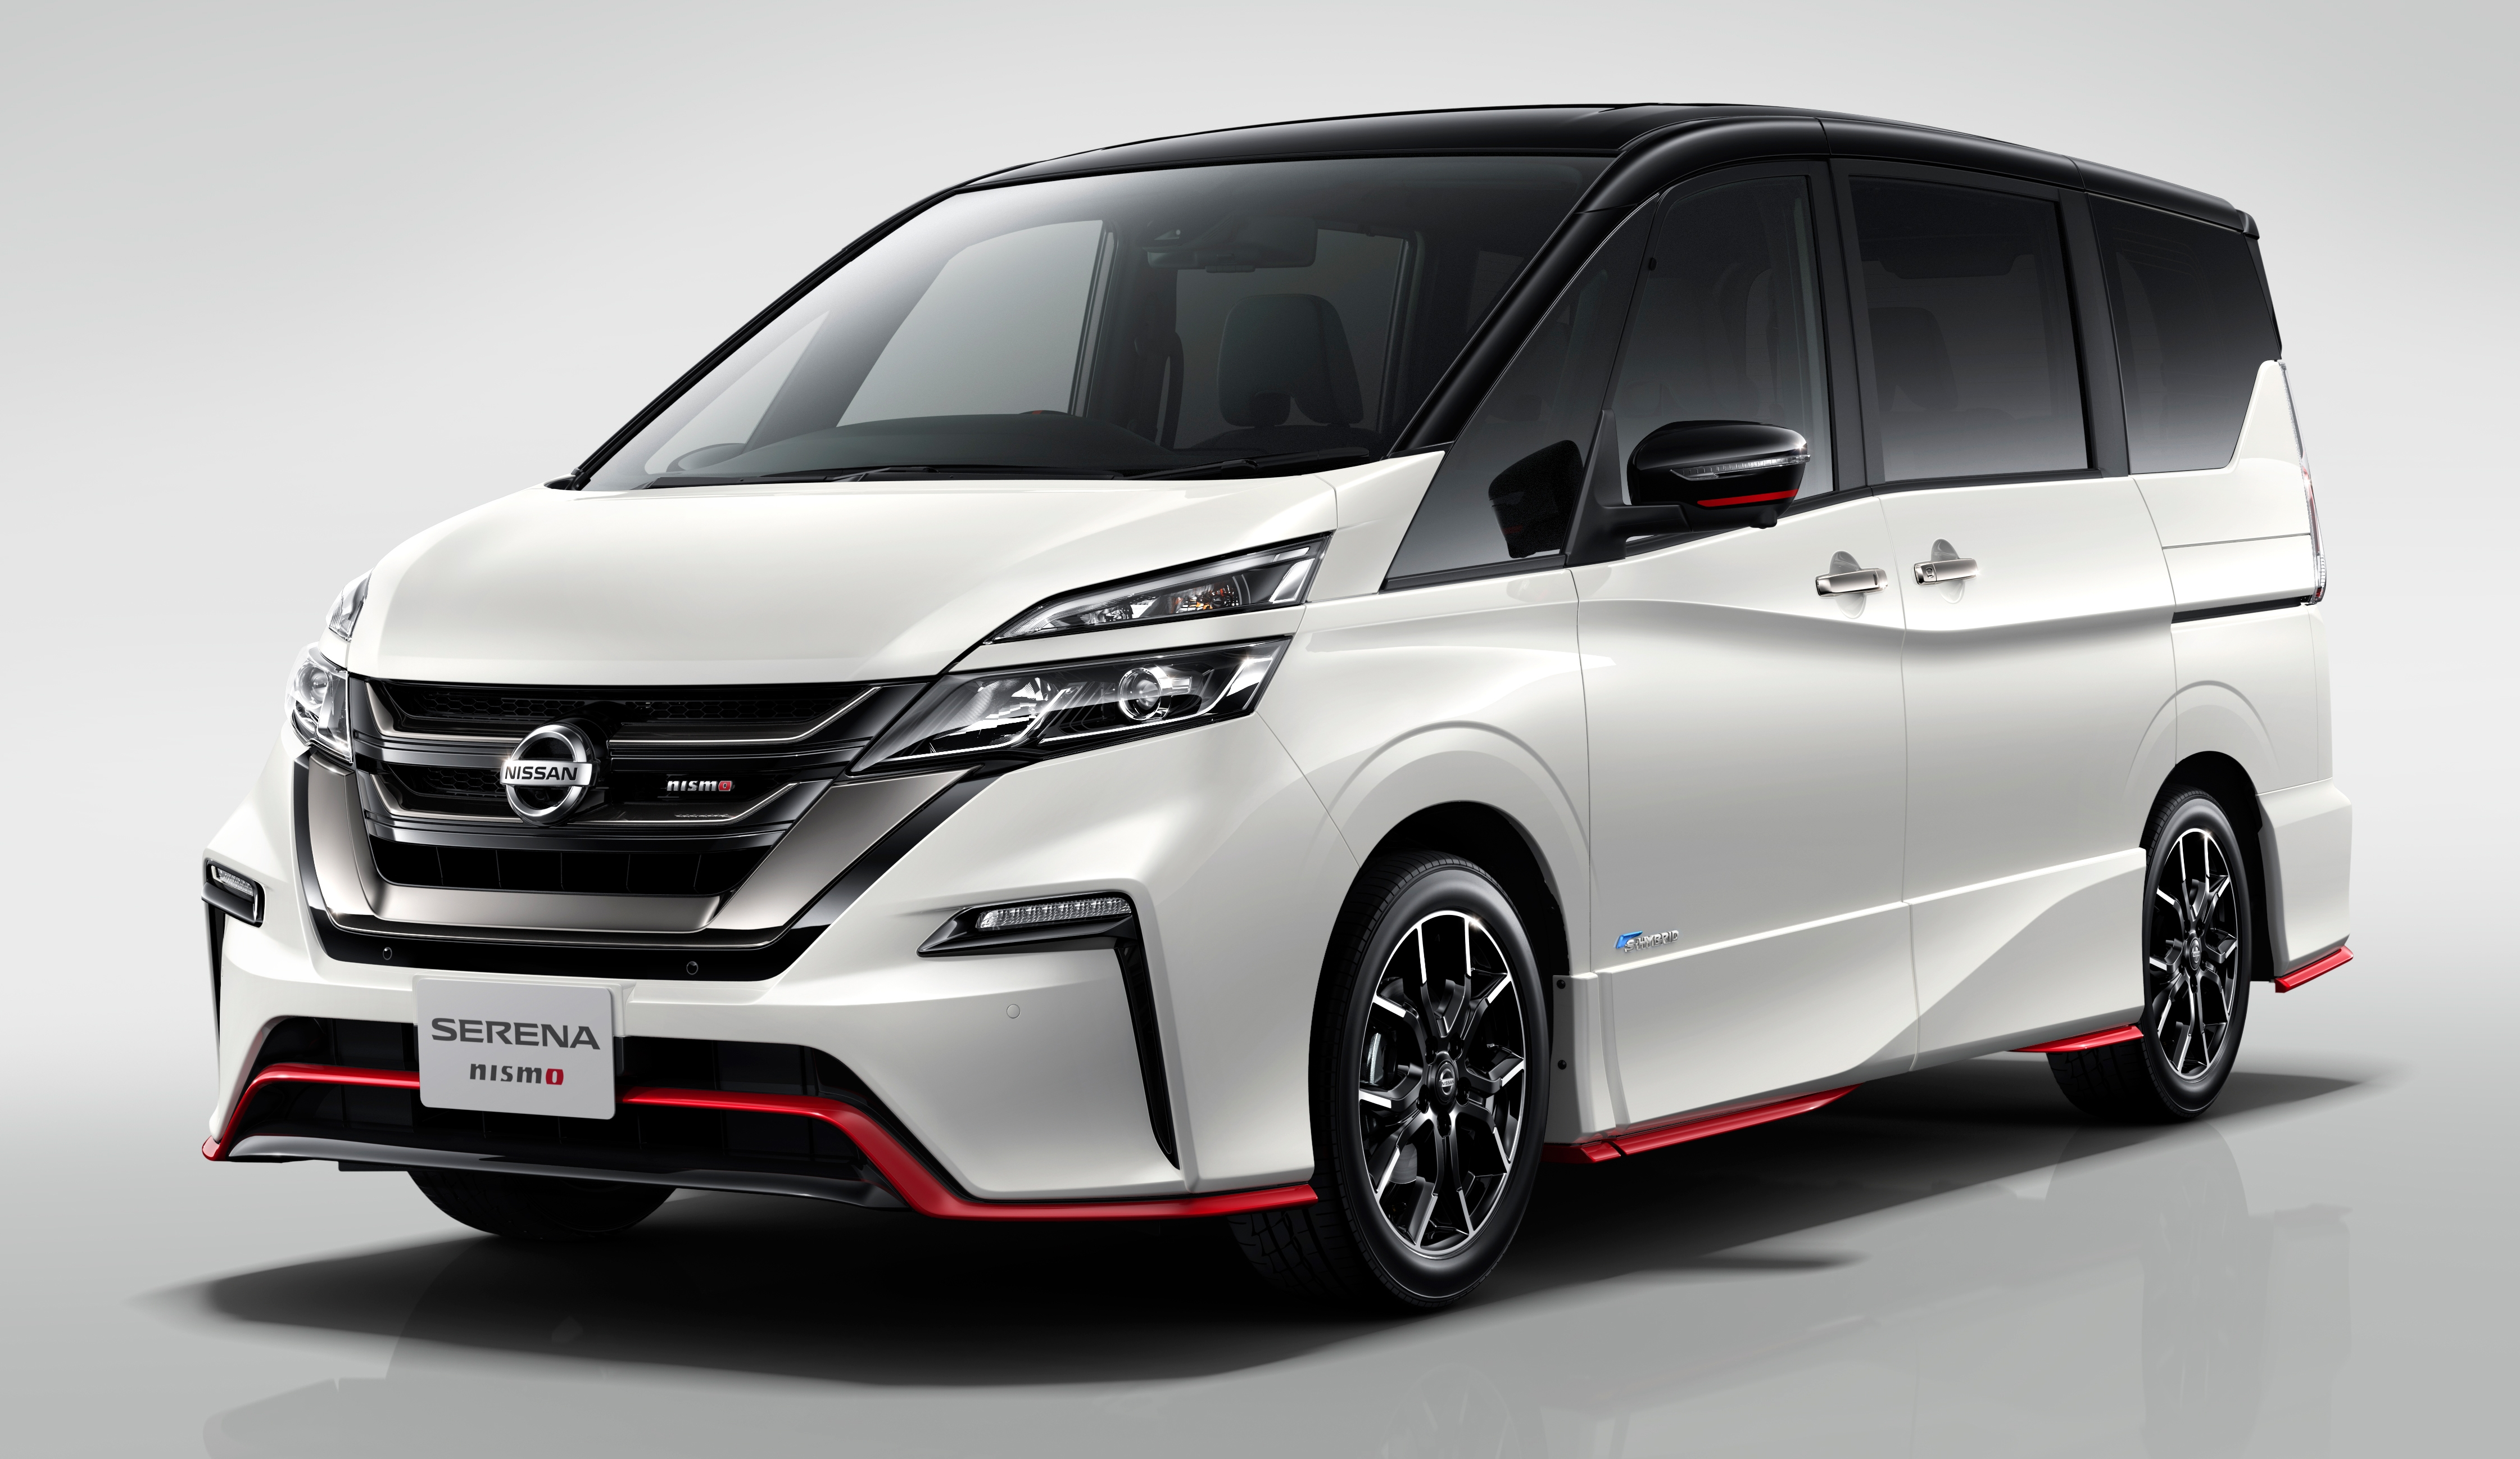 Nissan Serena Nismo Makes For A Sportier Proposition